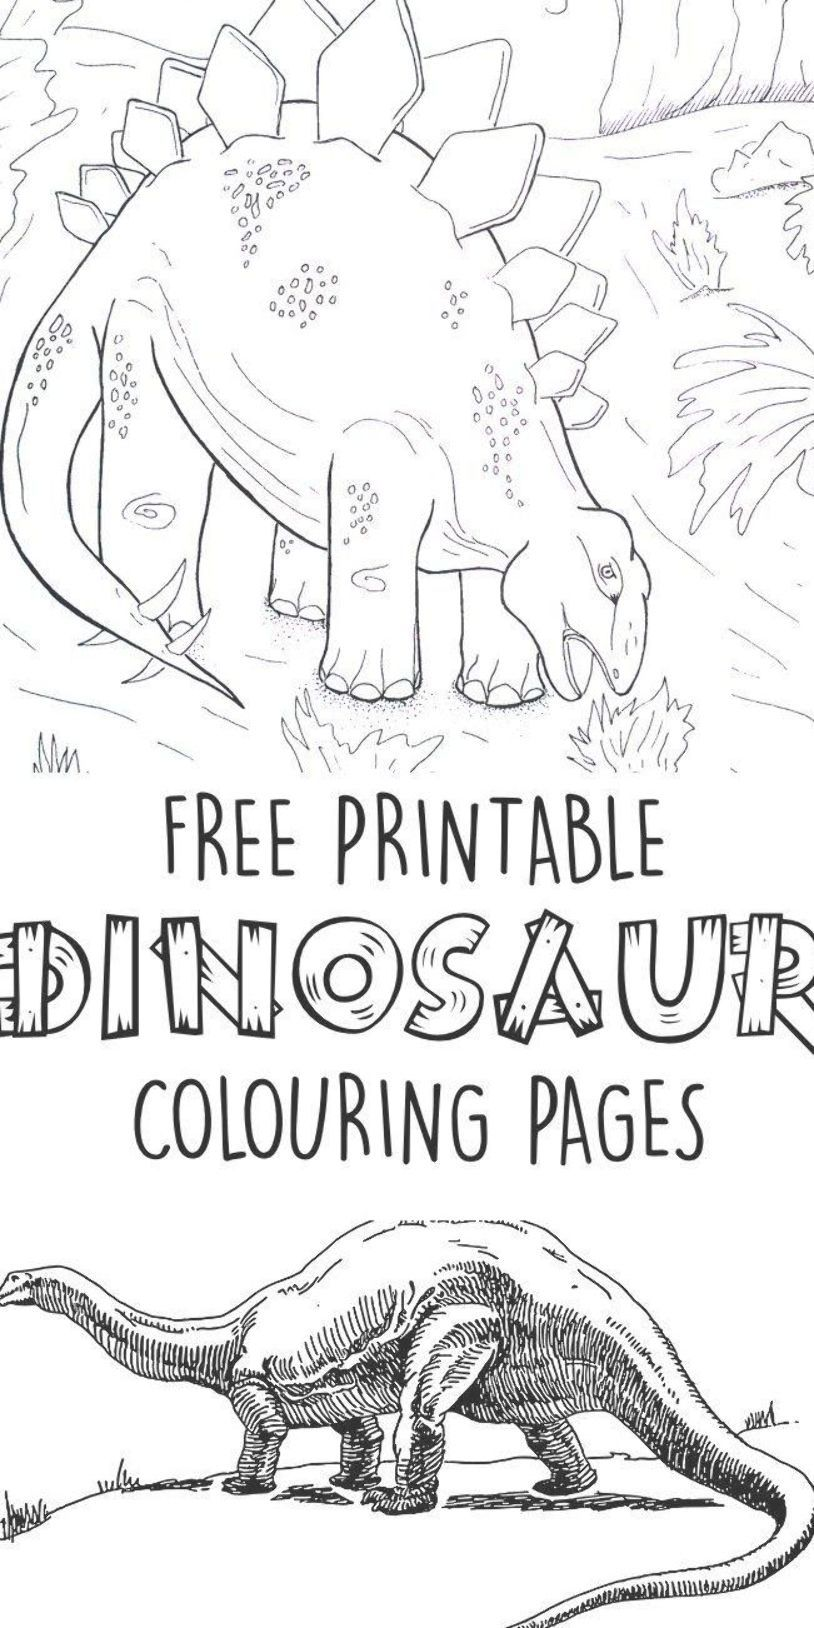 Print These Free Dinosaur Colouring Pages To Keep Your Little Dino Lover Entertained Today I Have A Free Malvorlage Dinosaurier Malvorlagen Kinder Dinosaurier